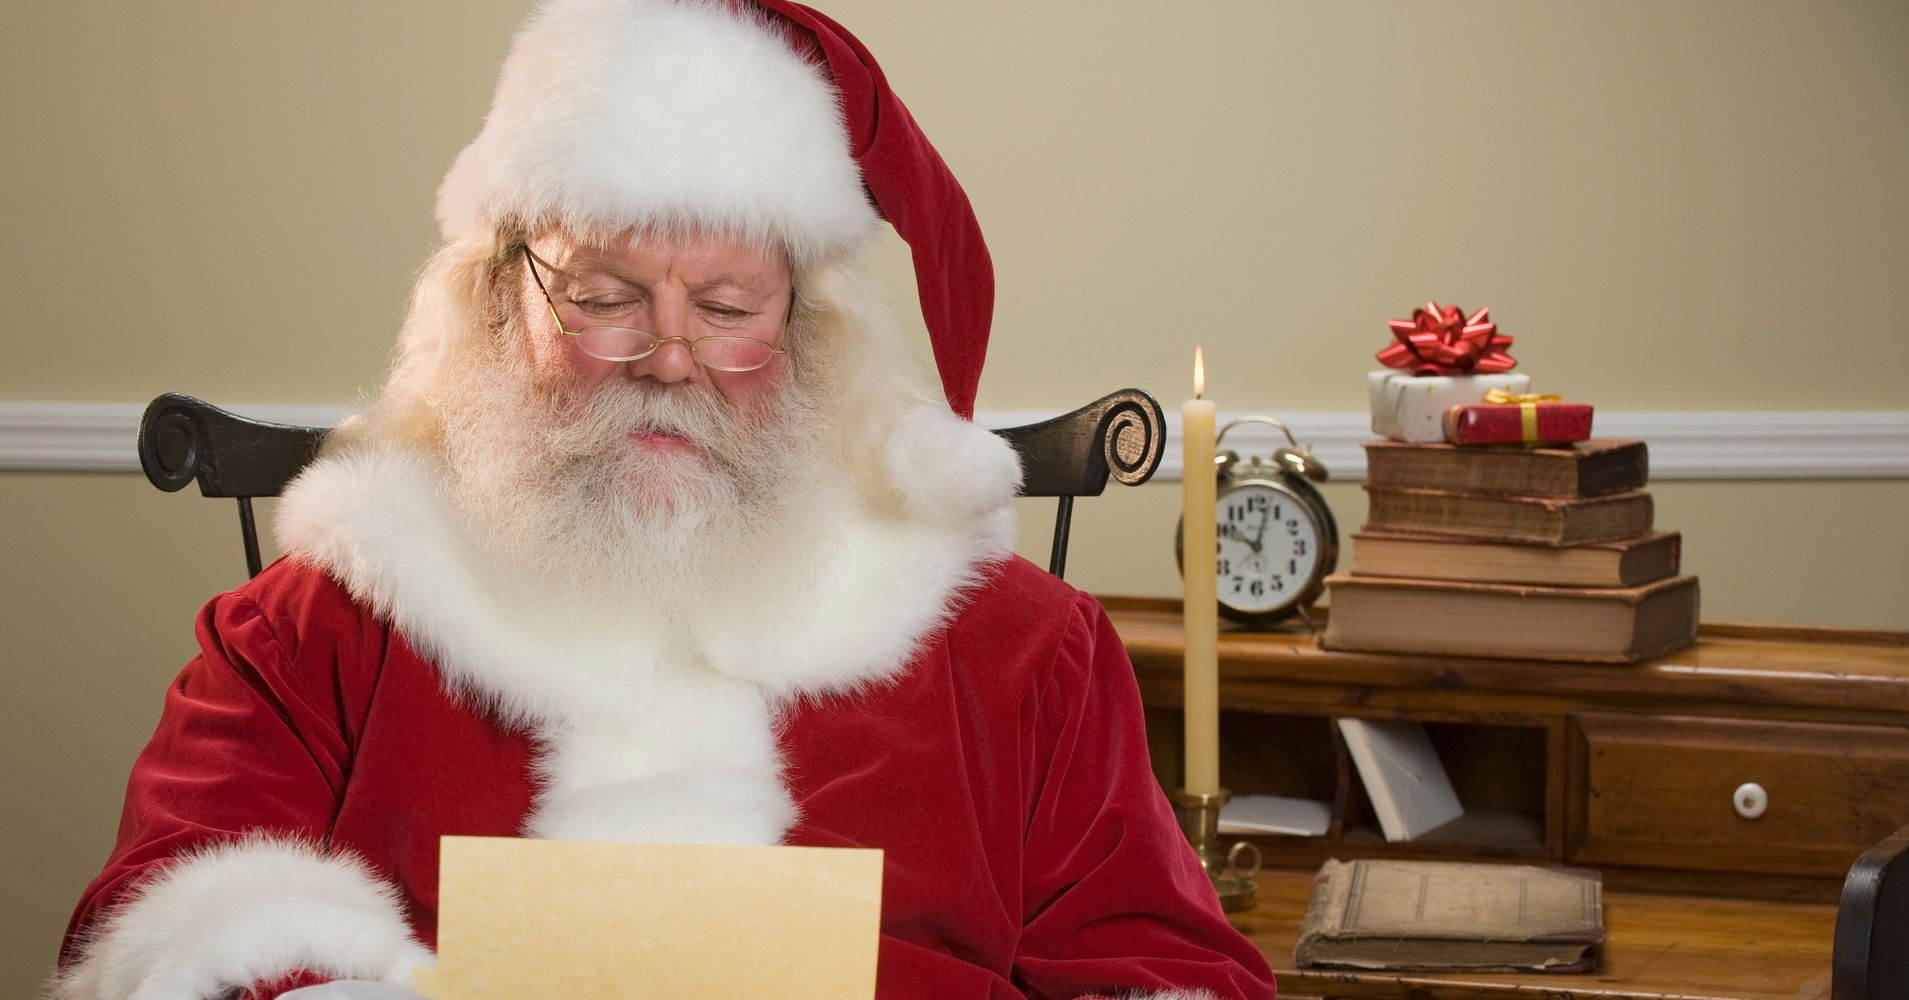 Heres how to get a letter from santa claus with a north pole heres how to get a letter from santa claus with a north pole postmark huffpost spiritdancerdesigns Images